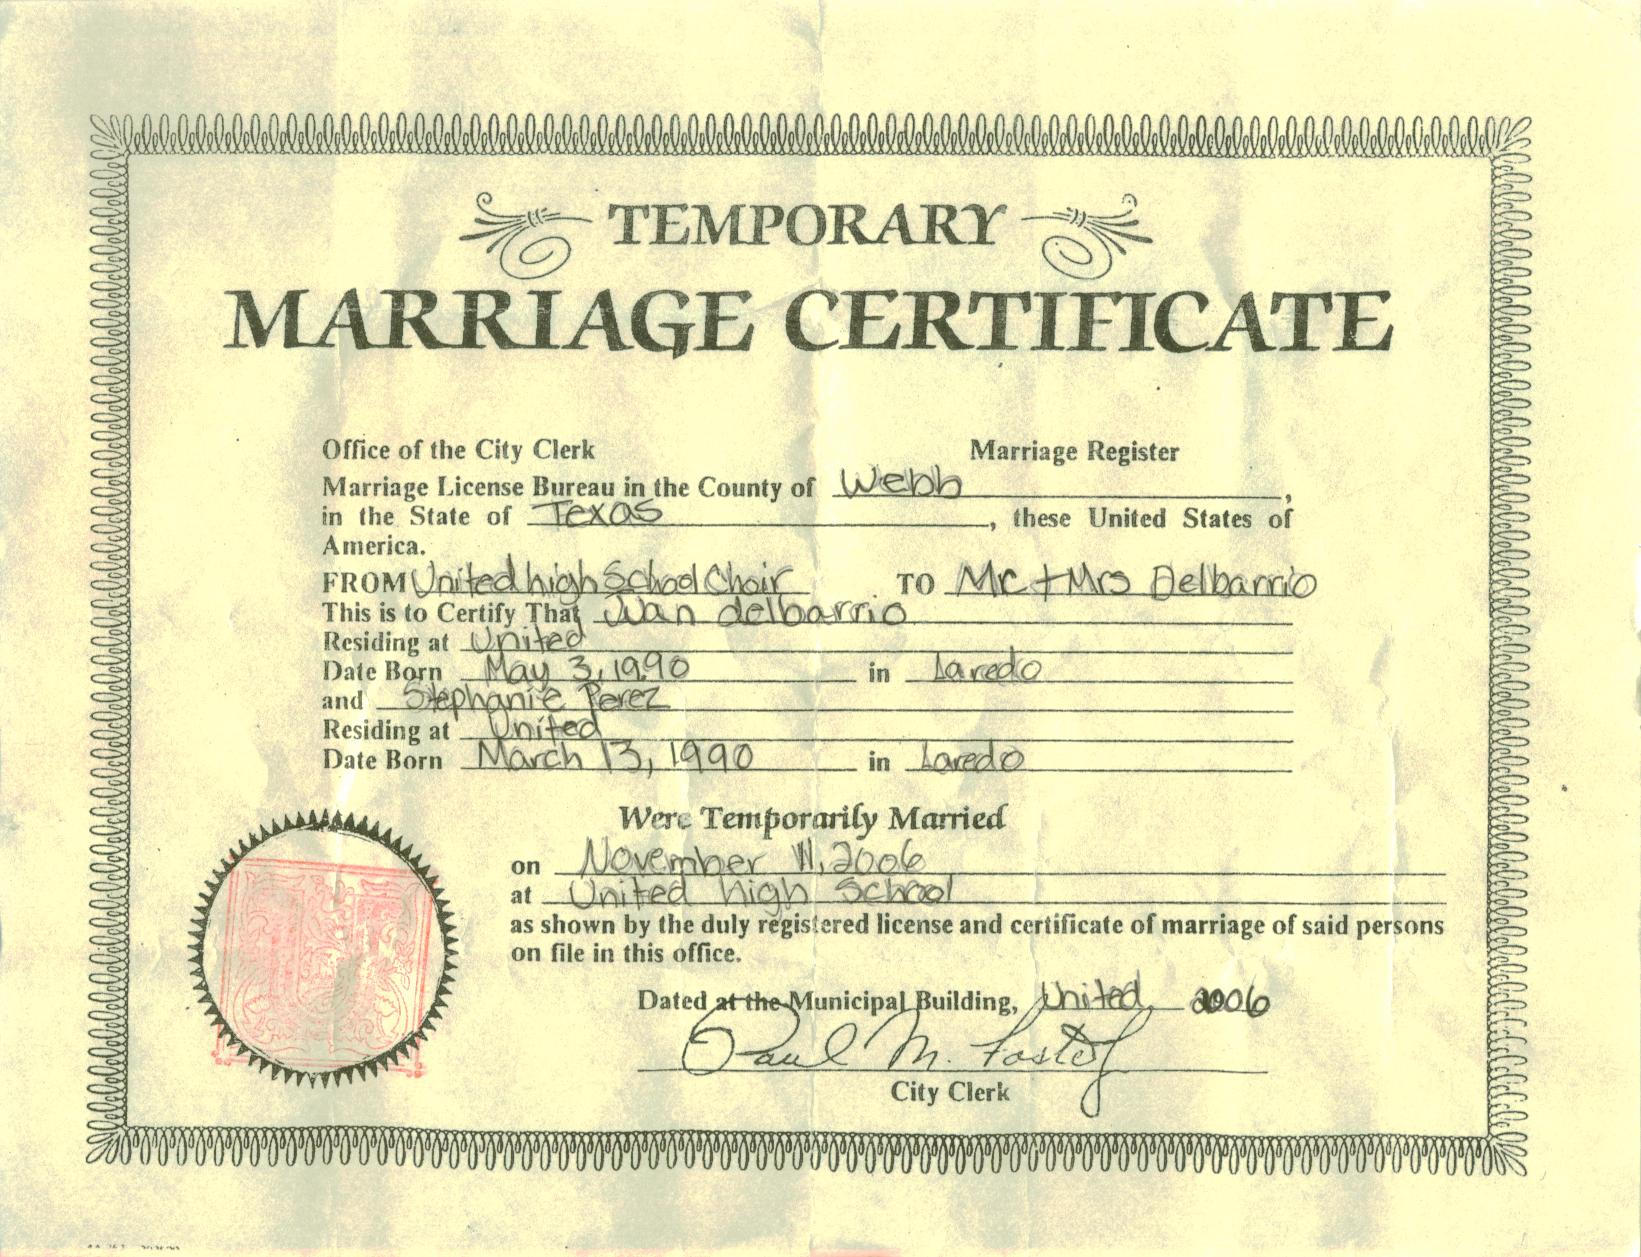 Temporary Marriage Certificate By Princess Tephy On Deviantart